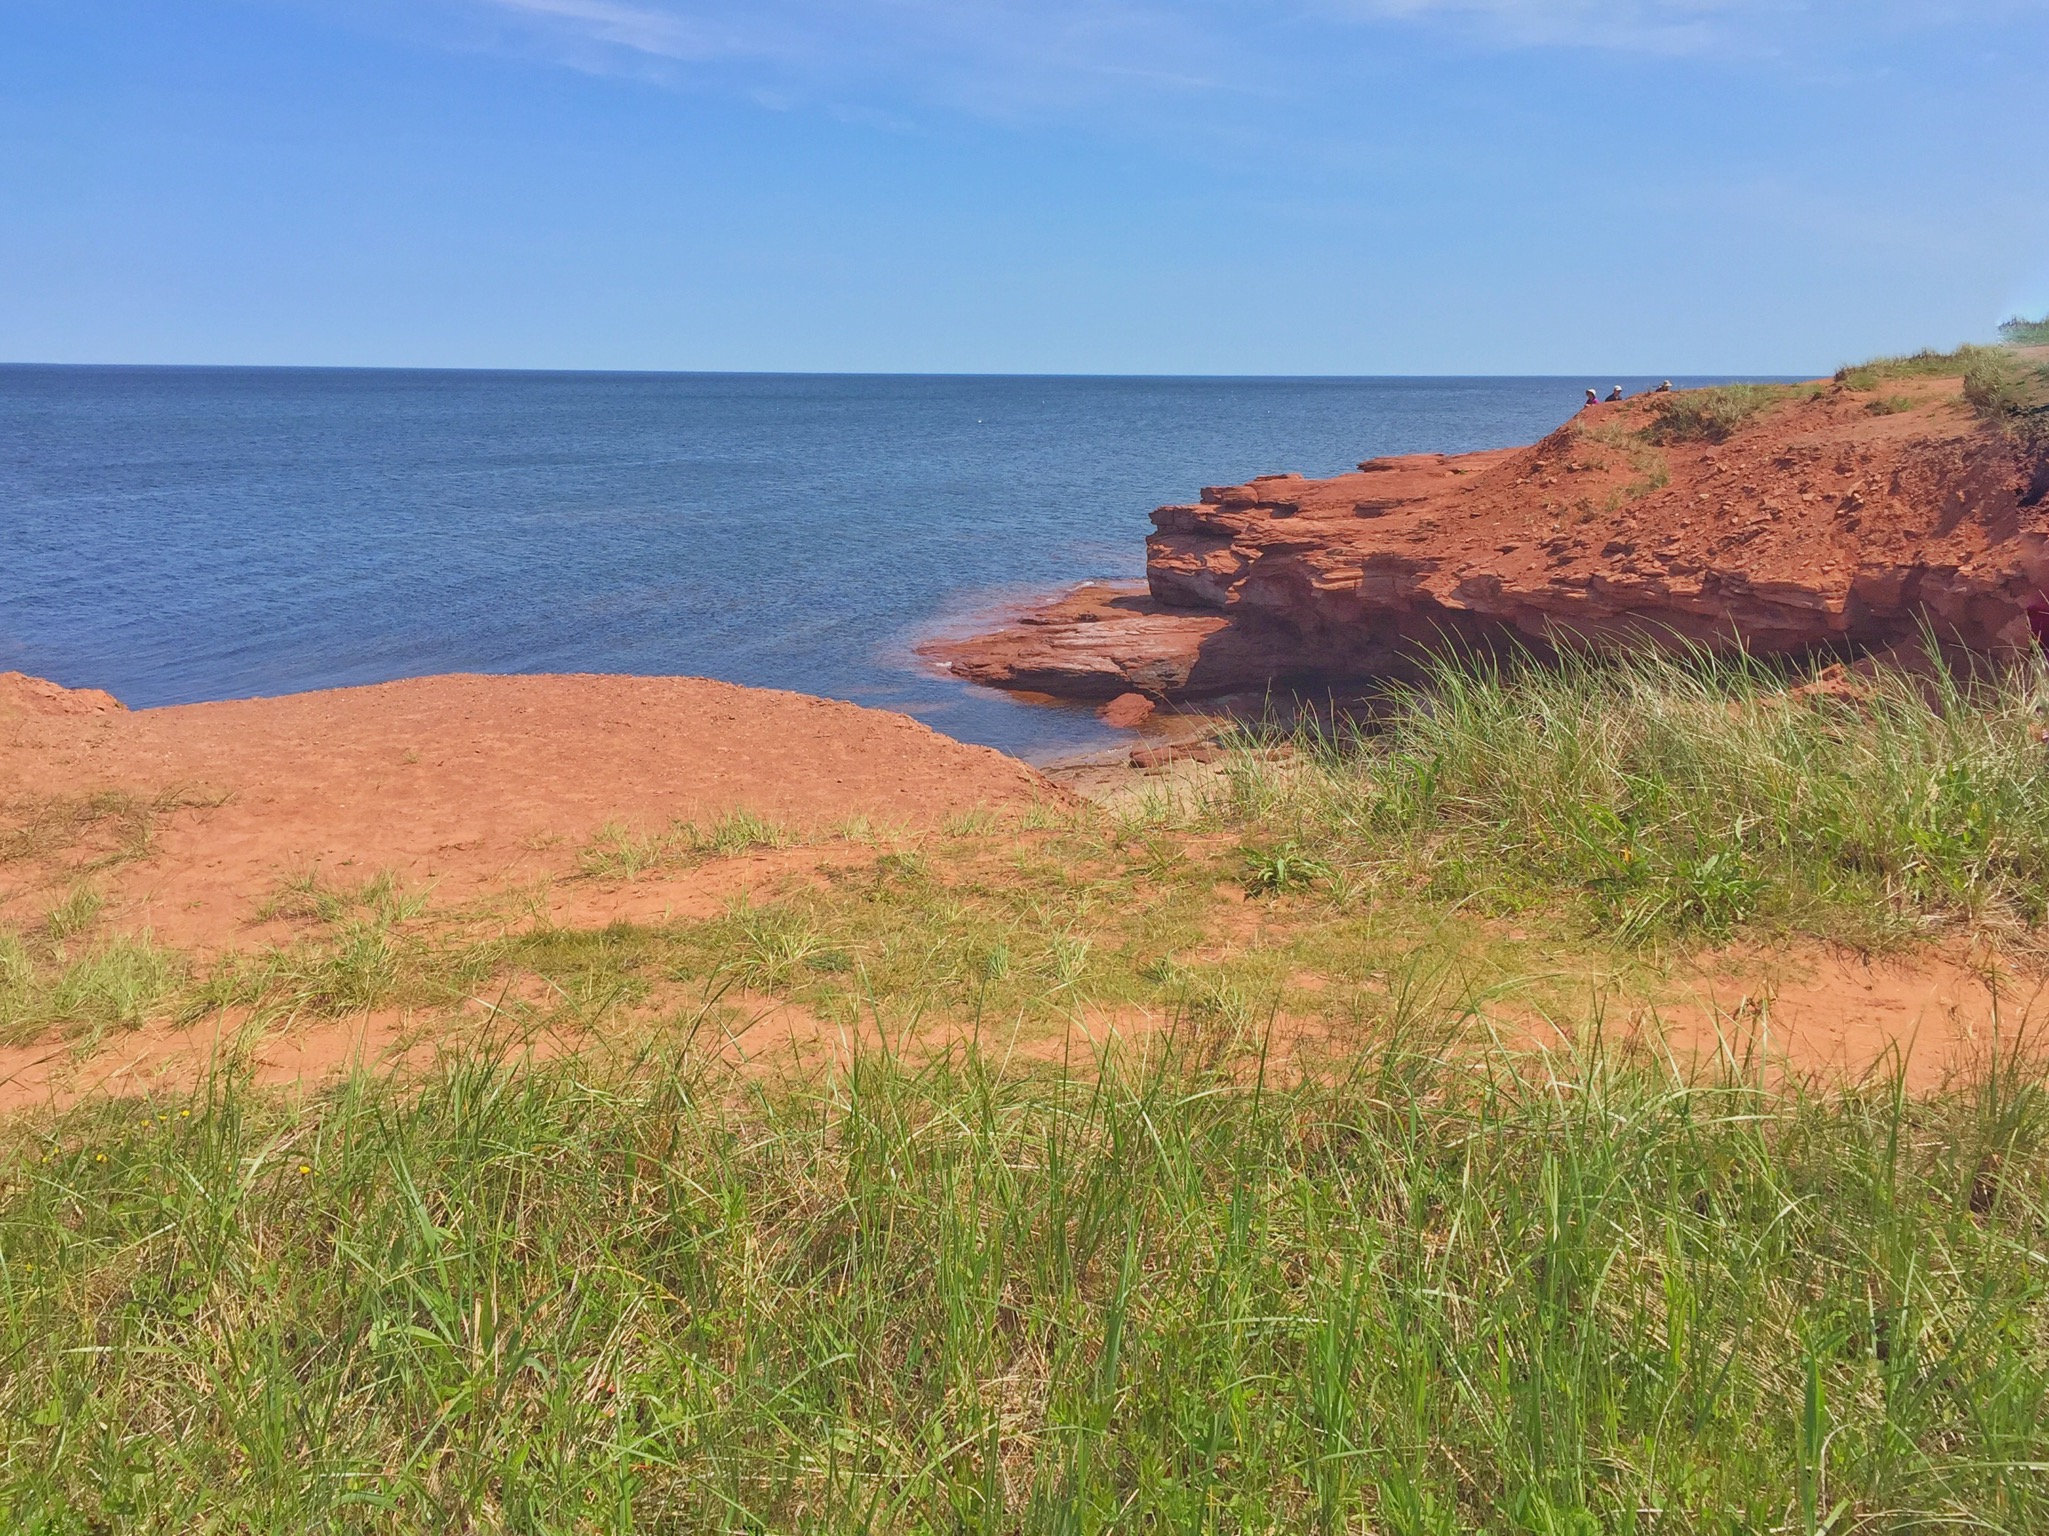 Red Sandstone Cliffs on North Shore